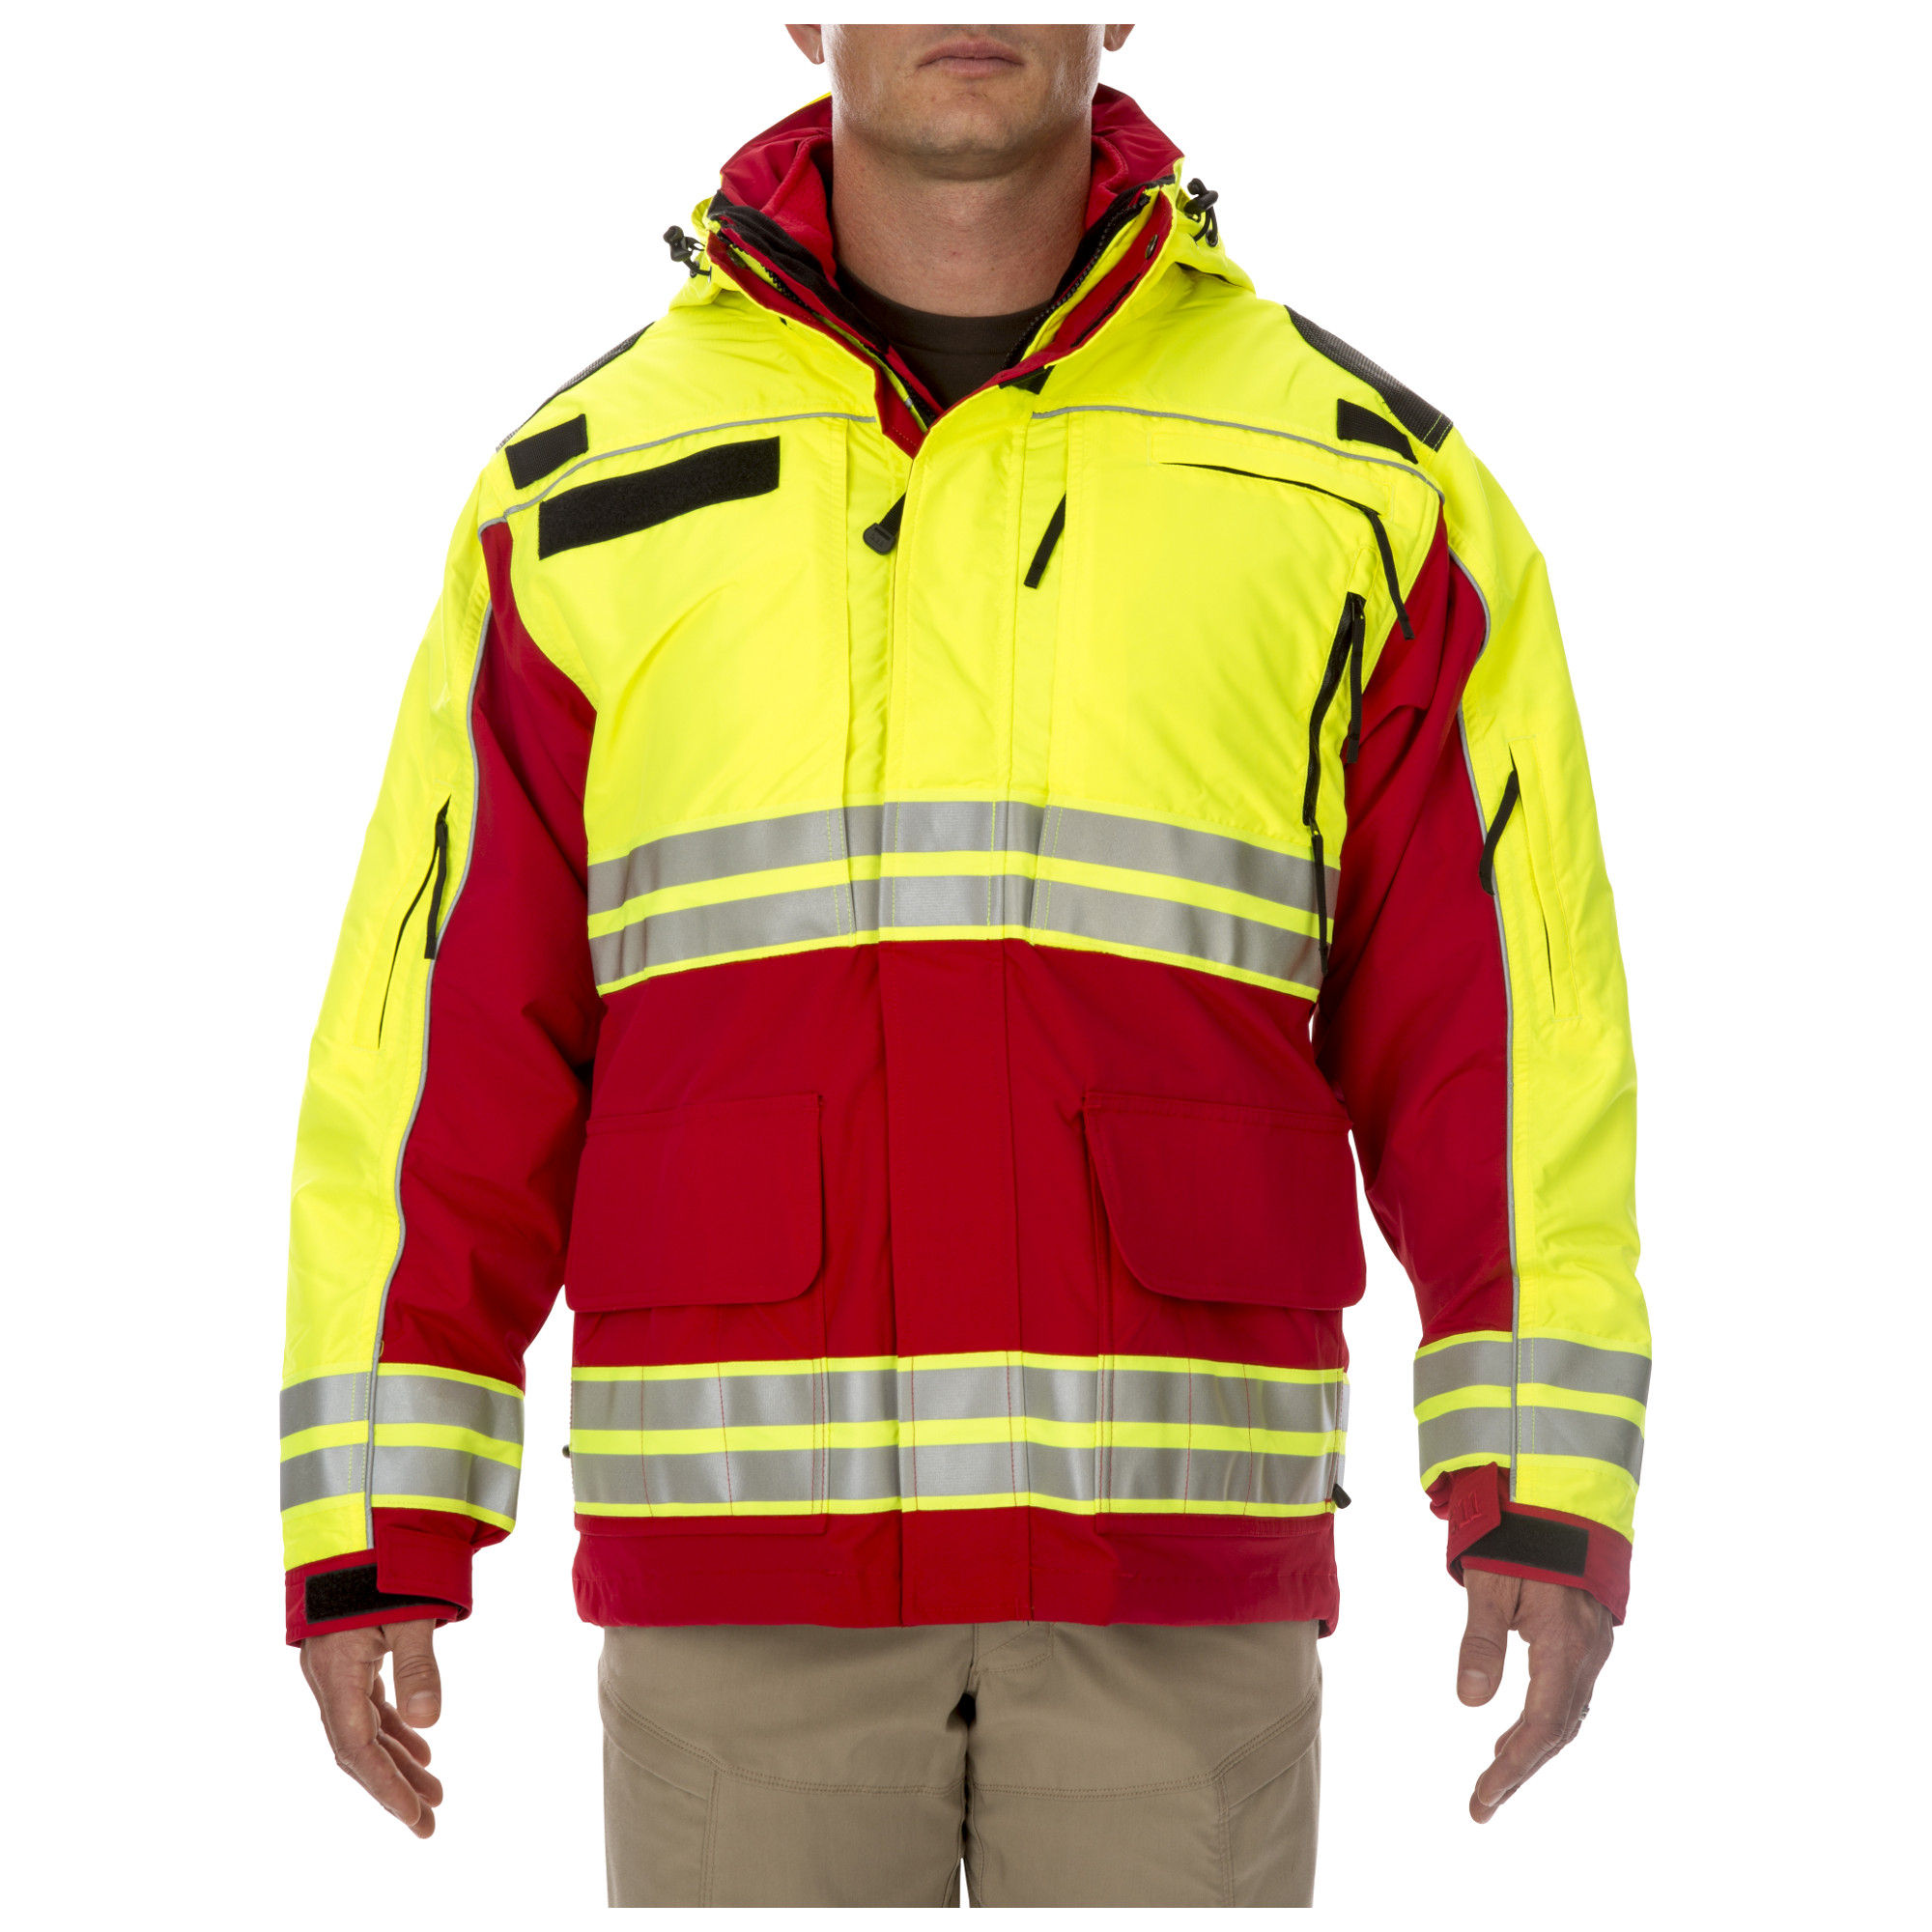 5.11 Tactical Men's Responder High-Visibility Parka Jacket (Red)